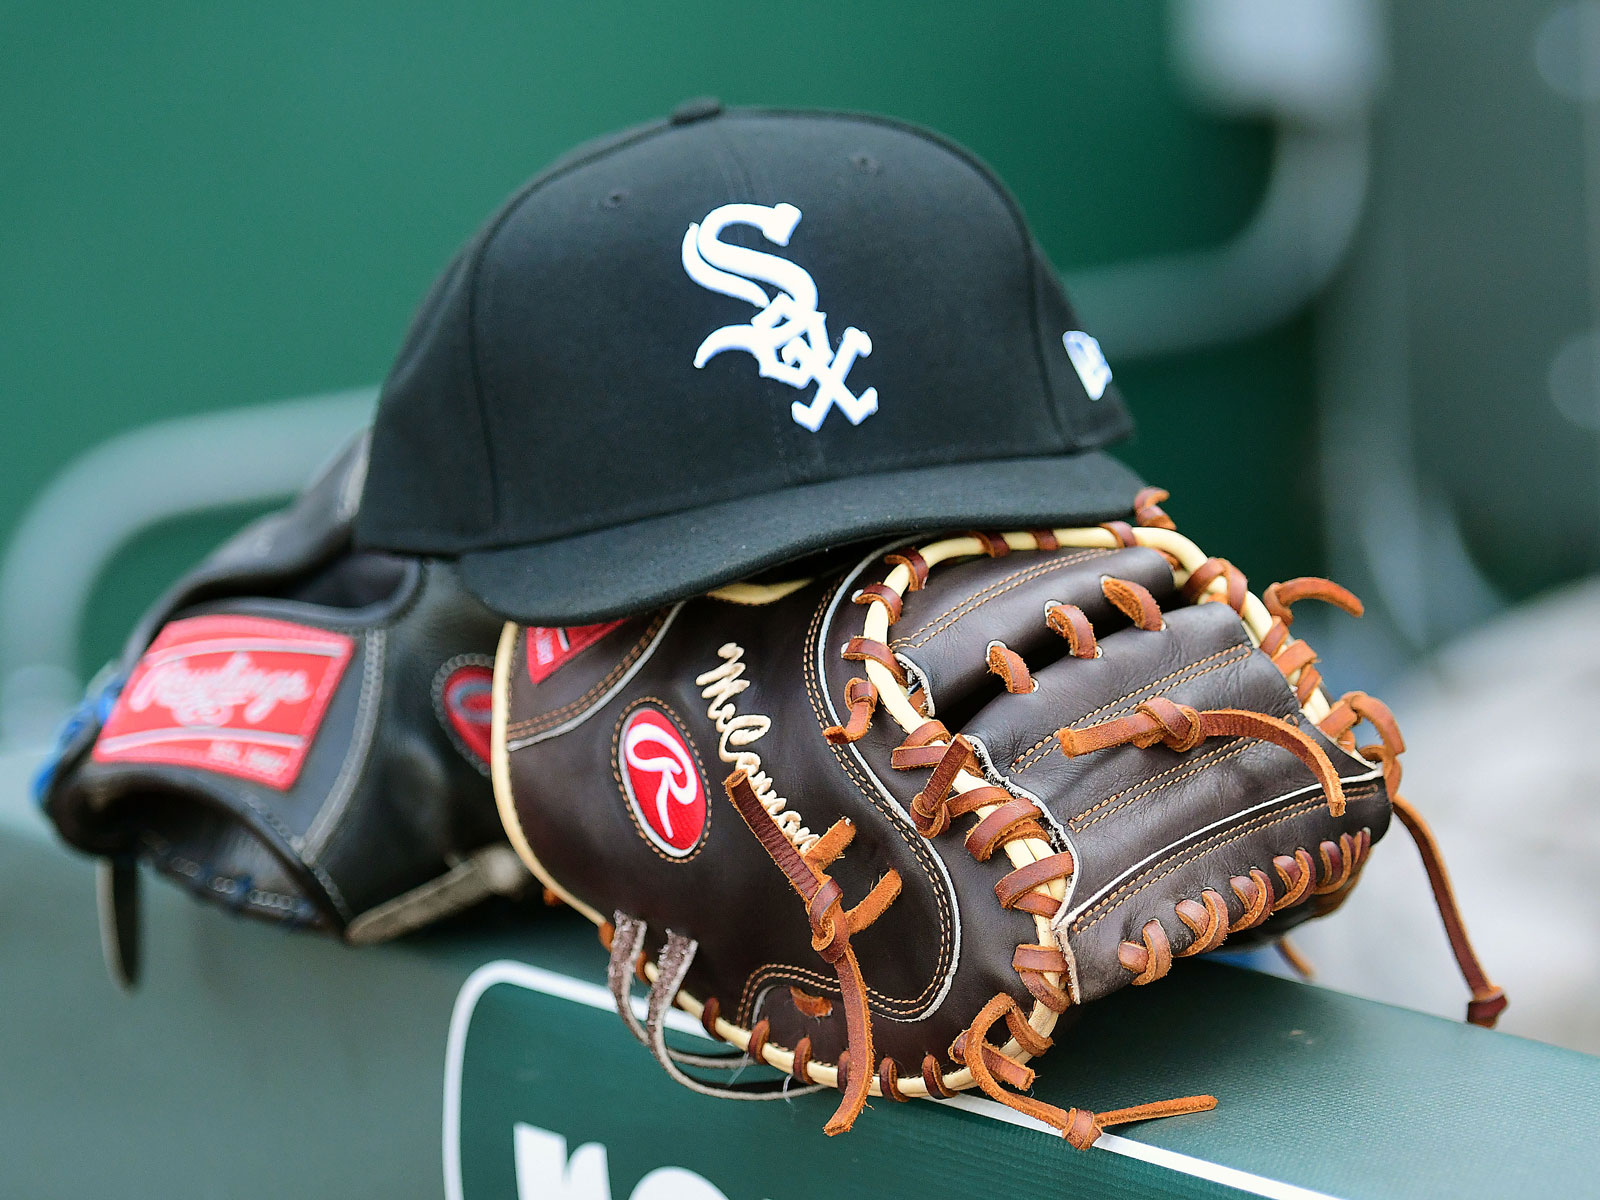 white sox hat and gloves